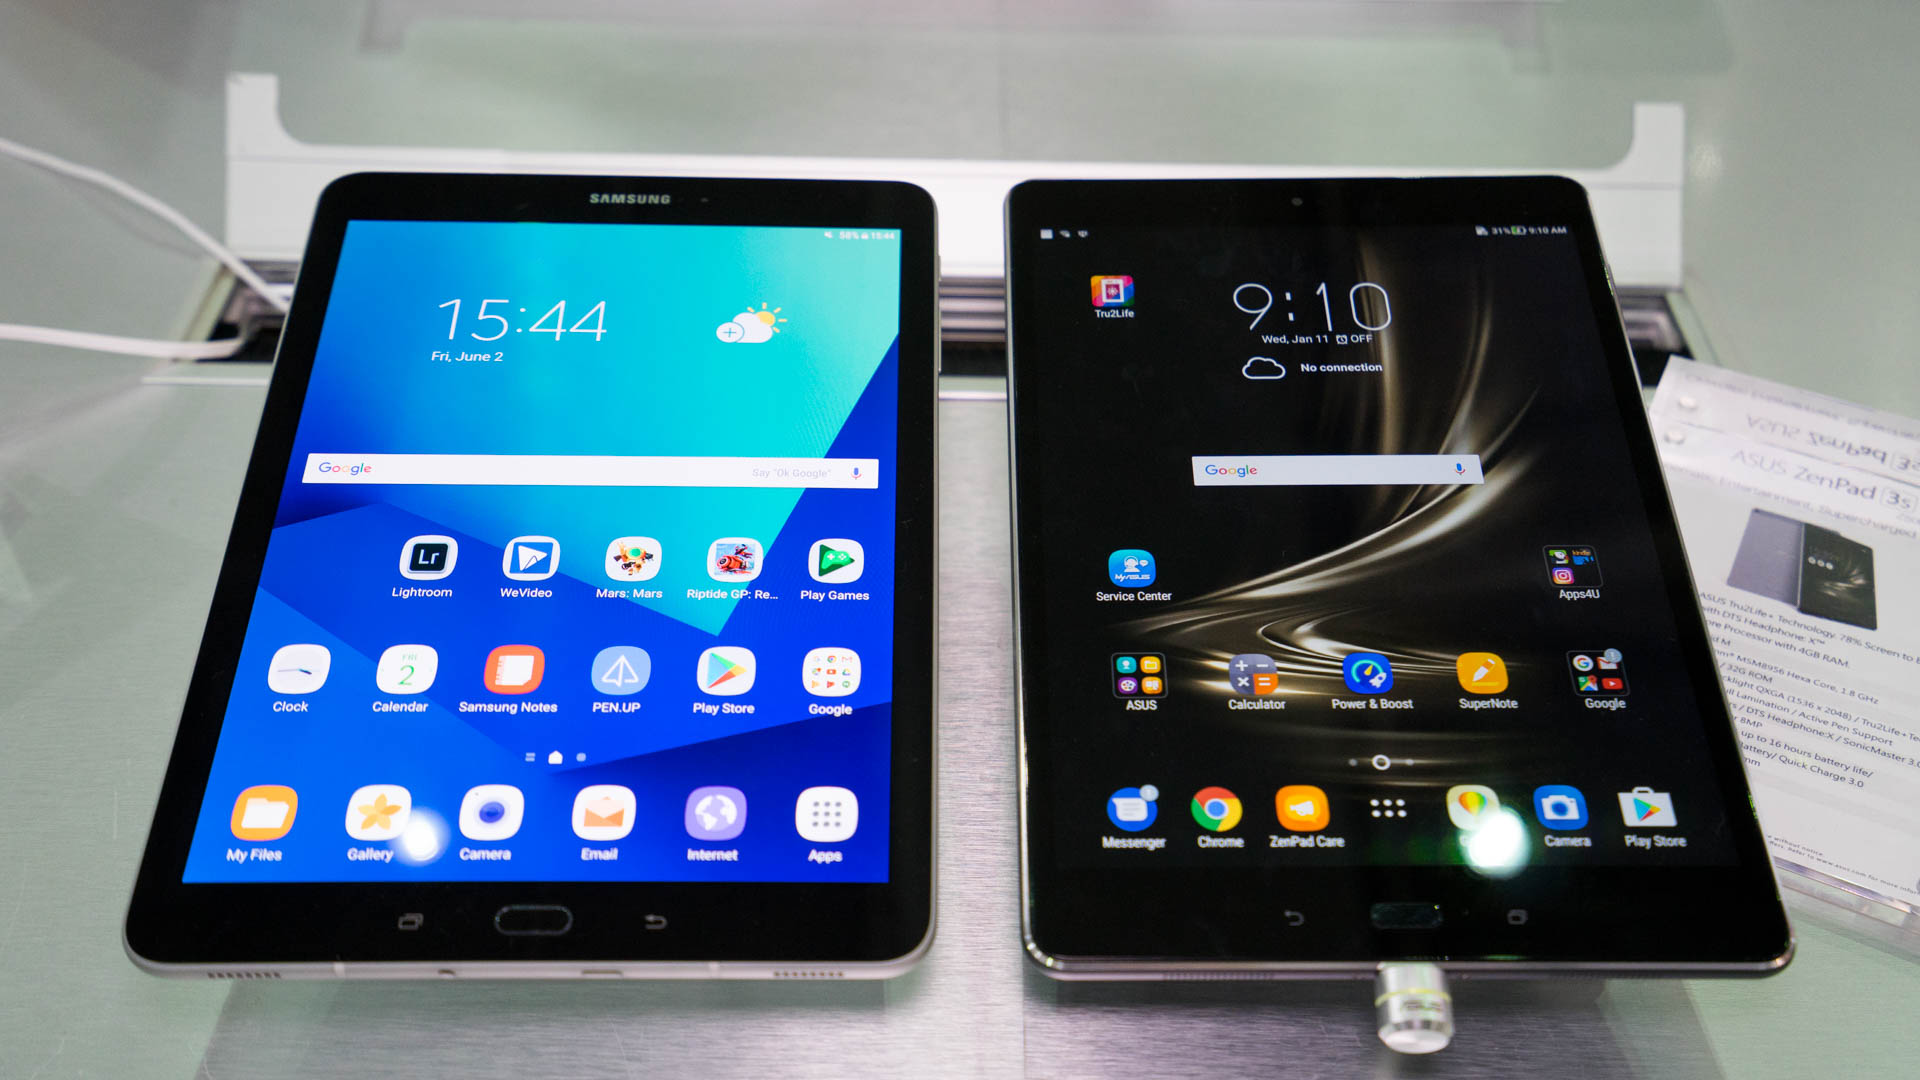 vergleich samsung galaxy tab s3 vs asus zenpad 3s 10. Black Bedroom Furniture Sets. Home Design Ideas